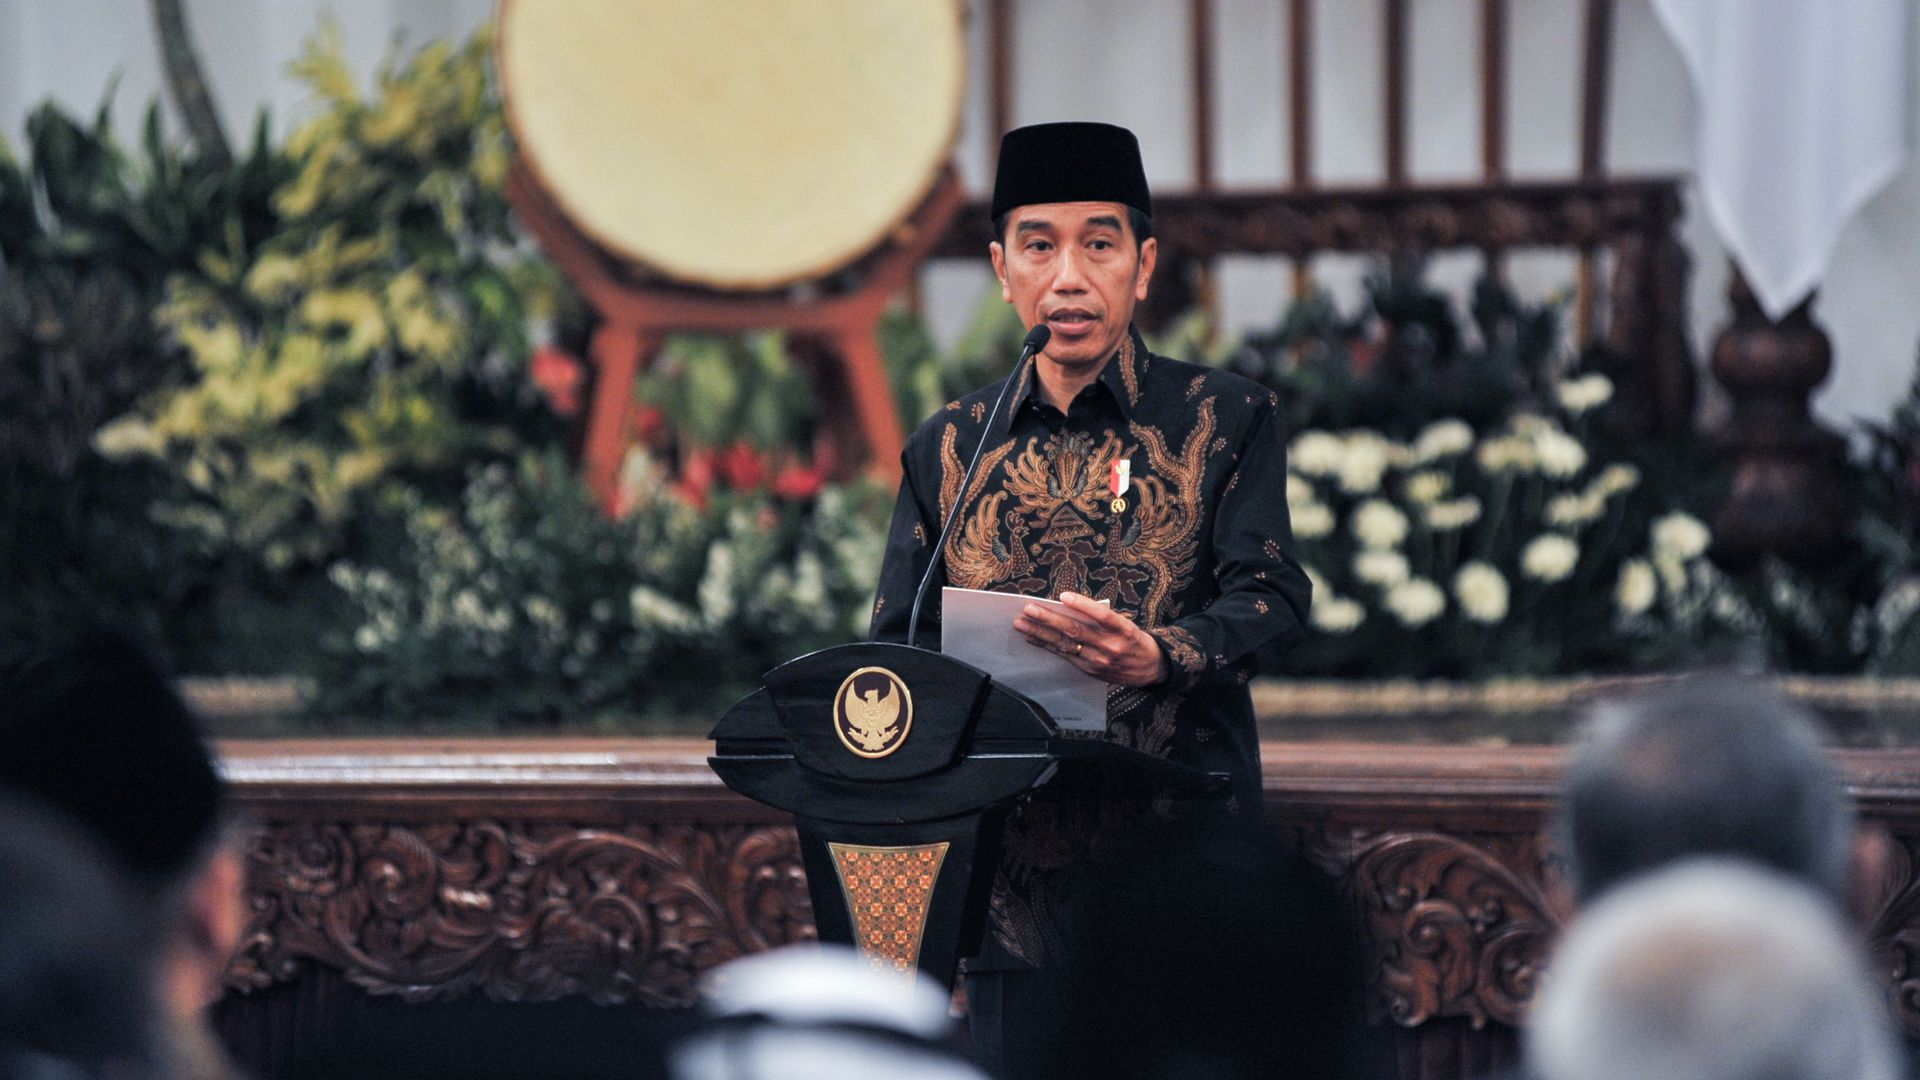 Indonesian President Joko Widodo speechs during Nuzulul Quran event at Presidential Merdeka Palace in Jakarta, Indonesia on June 5, 2018.